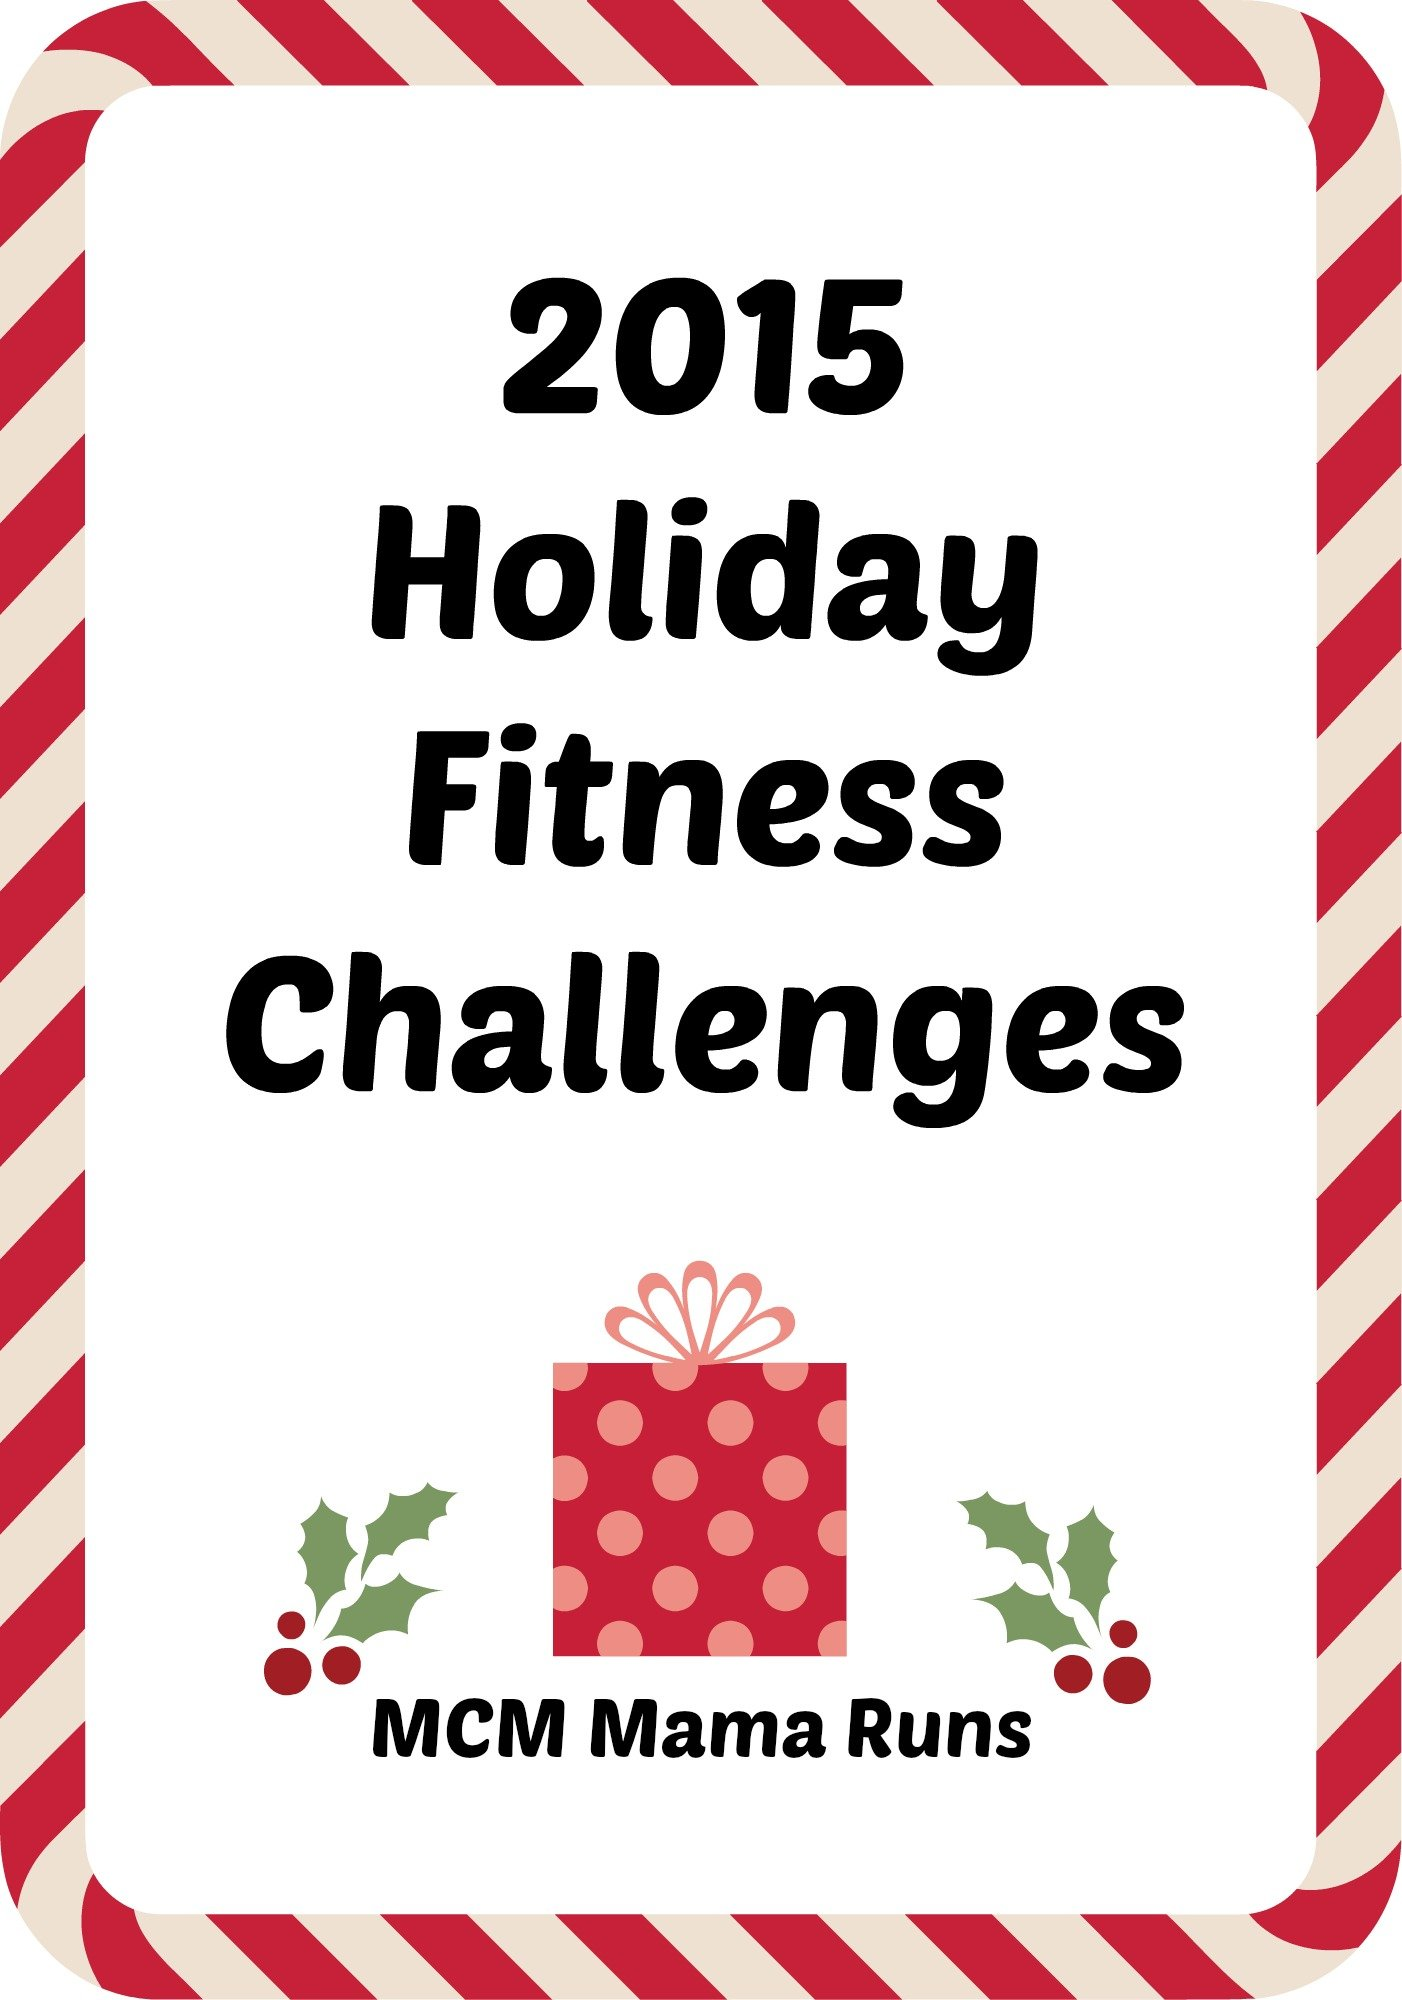 Holiday Running Challenge: Complete